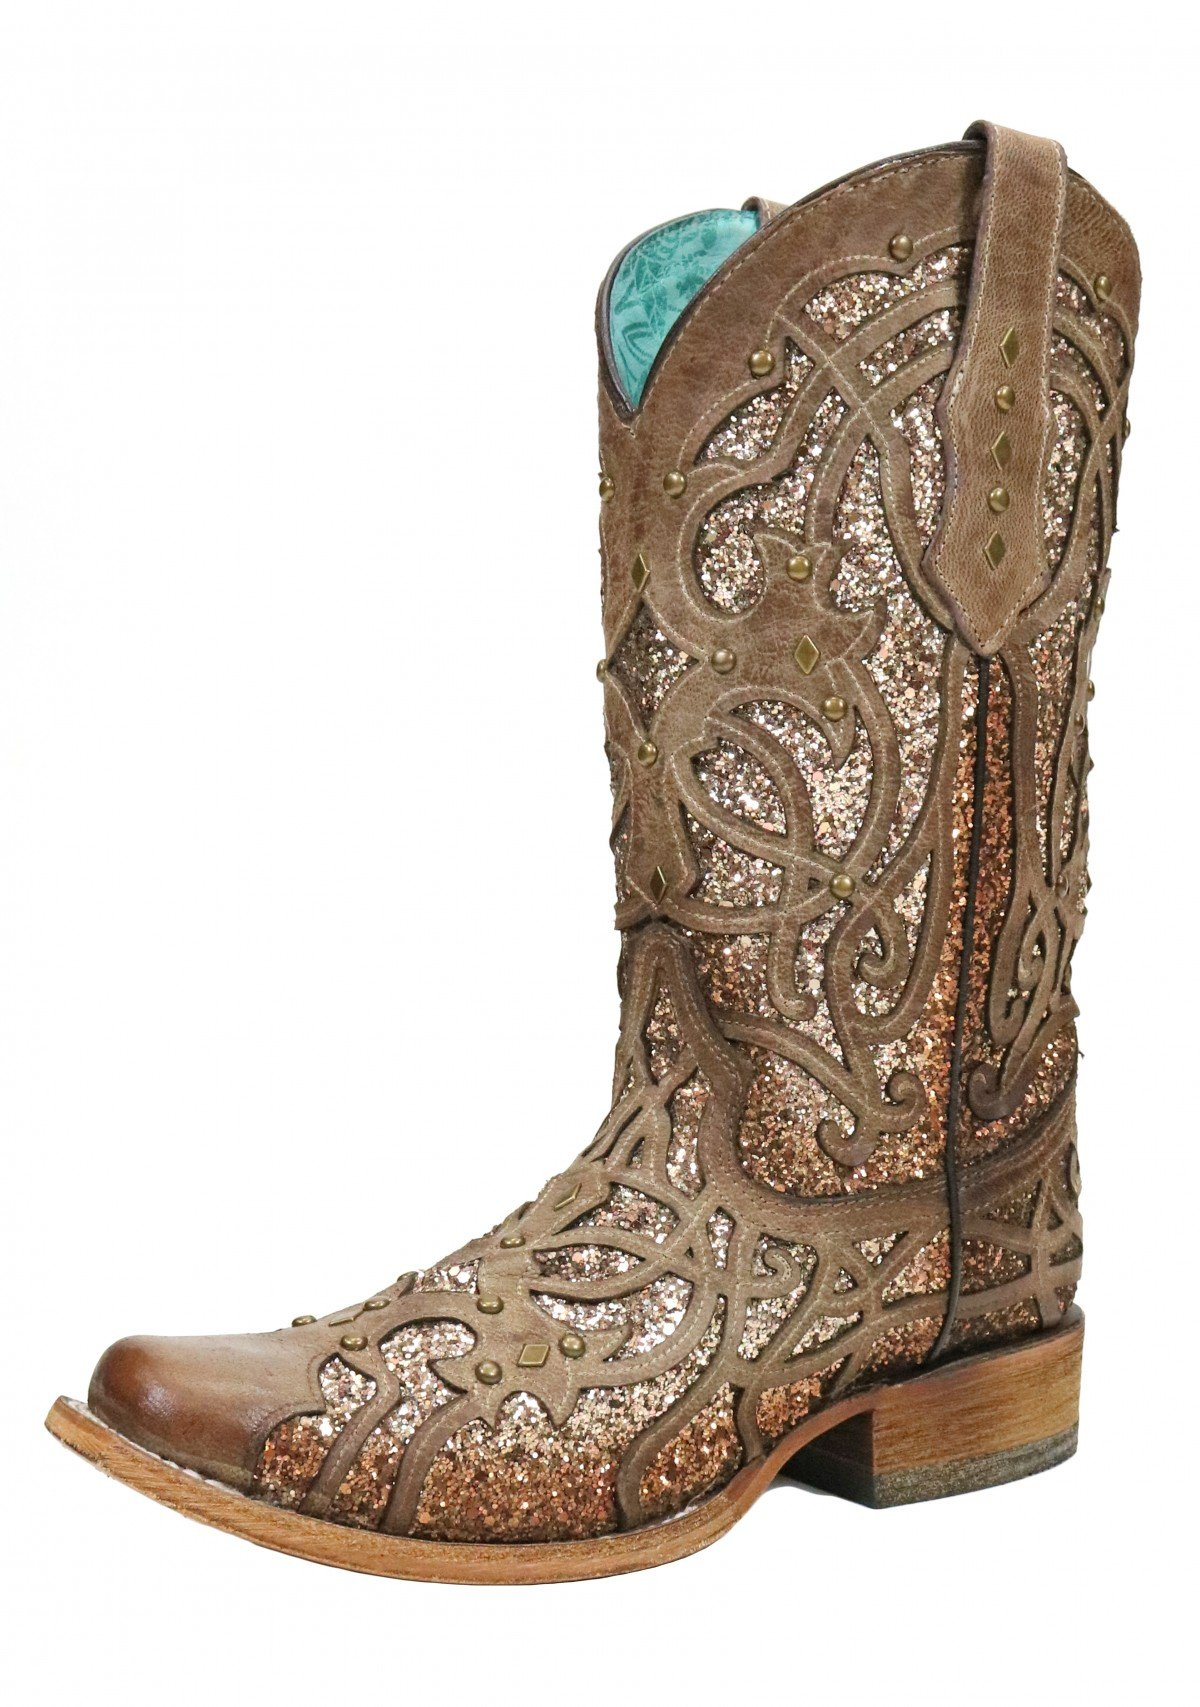 Corral Women's Square Toe Orix Glittered Inlay & Studs - Brown - BROWN - 9 - M